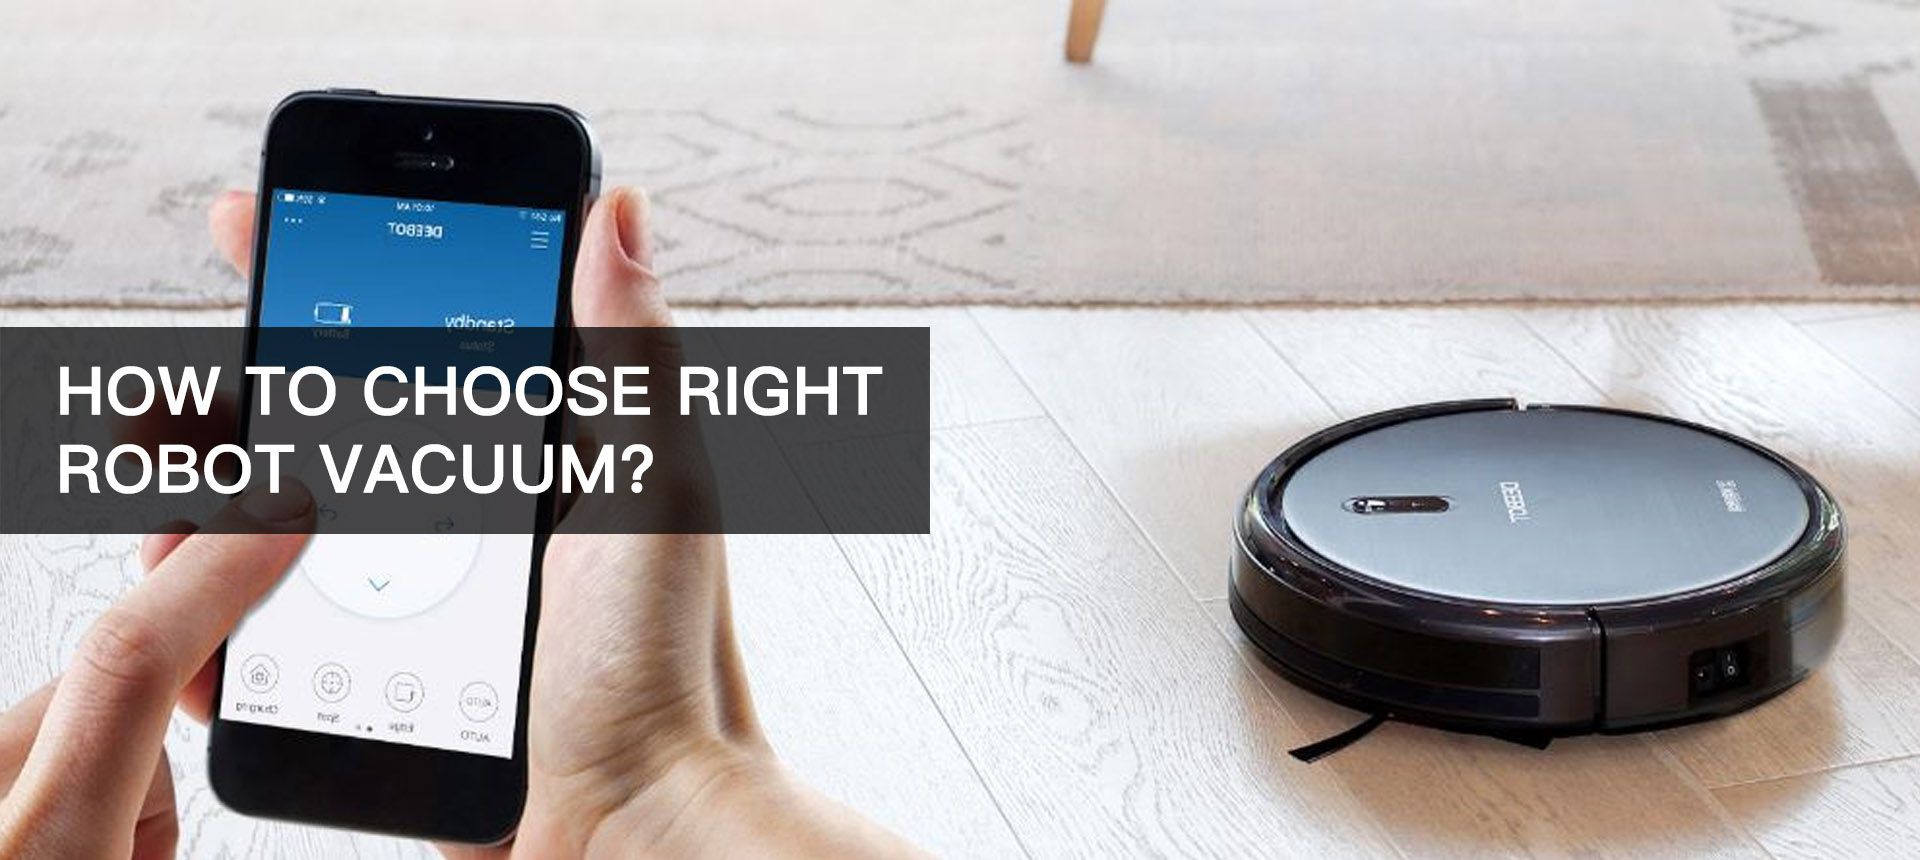 How To Choose Right Robot Vacuum